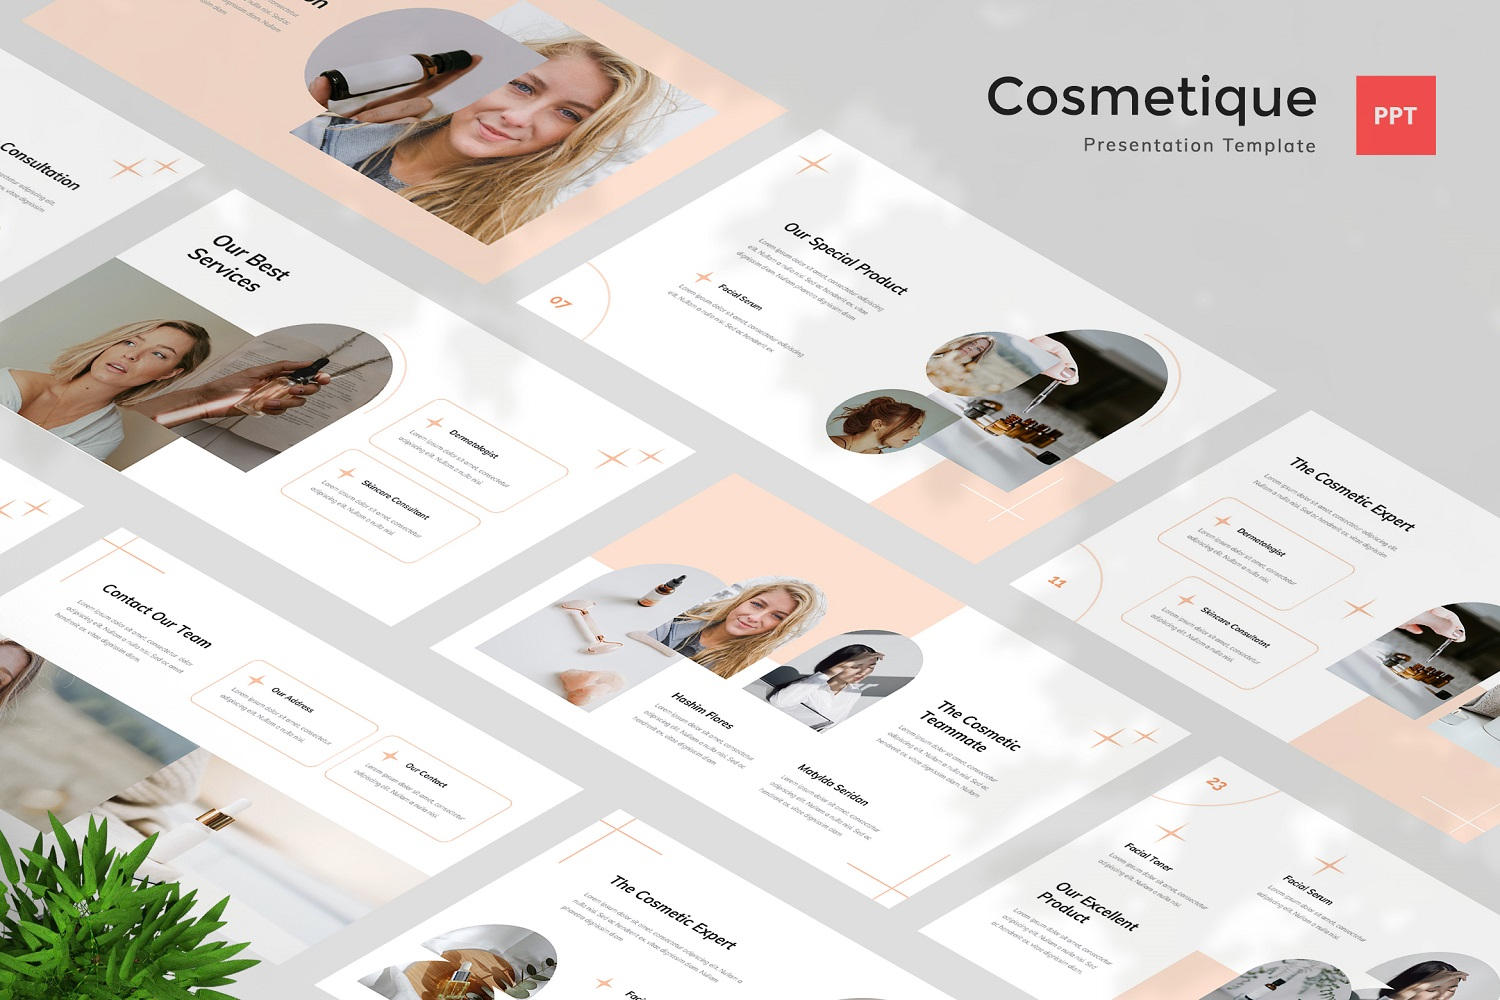 Cosmetique - Cosmetic Powerpoint Template